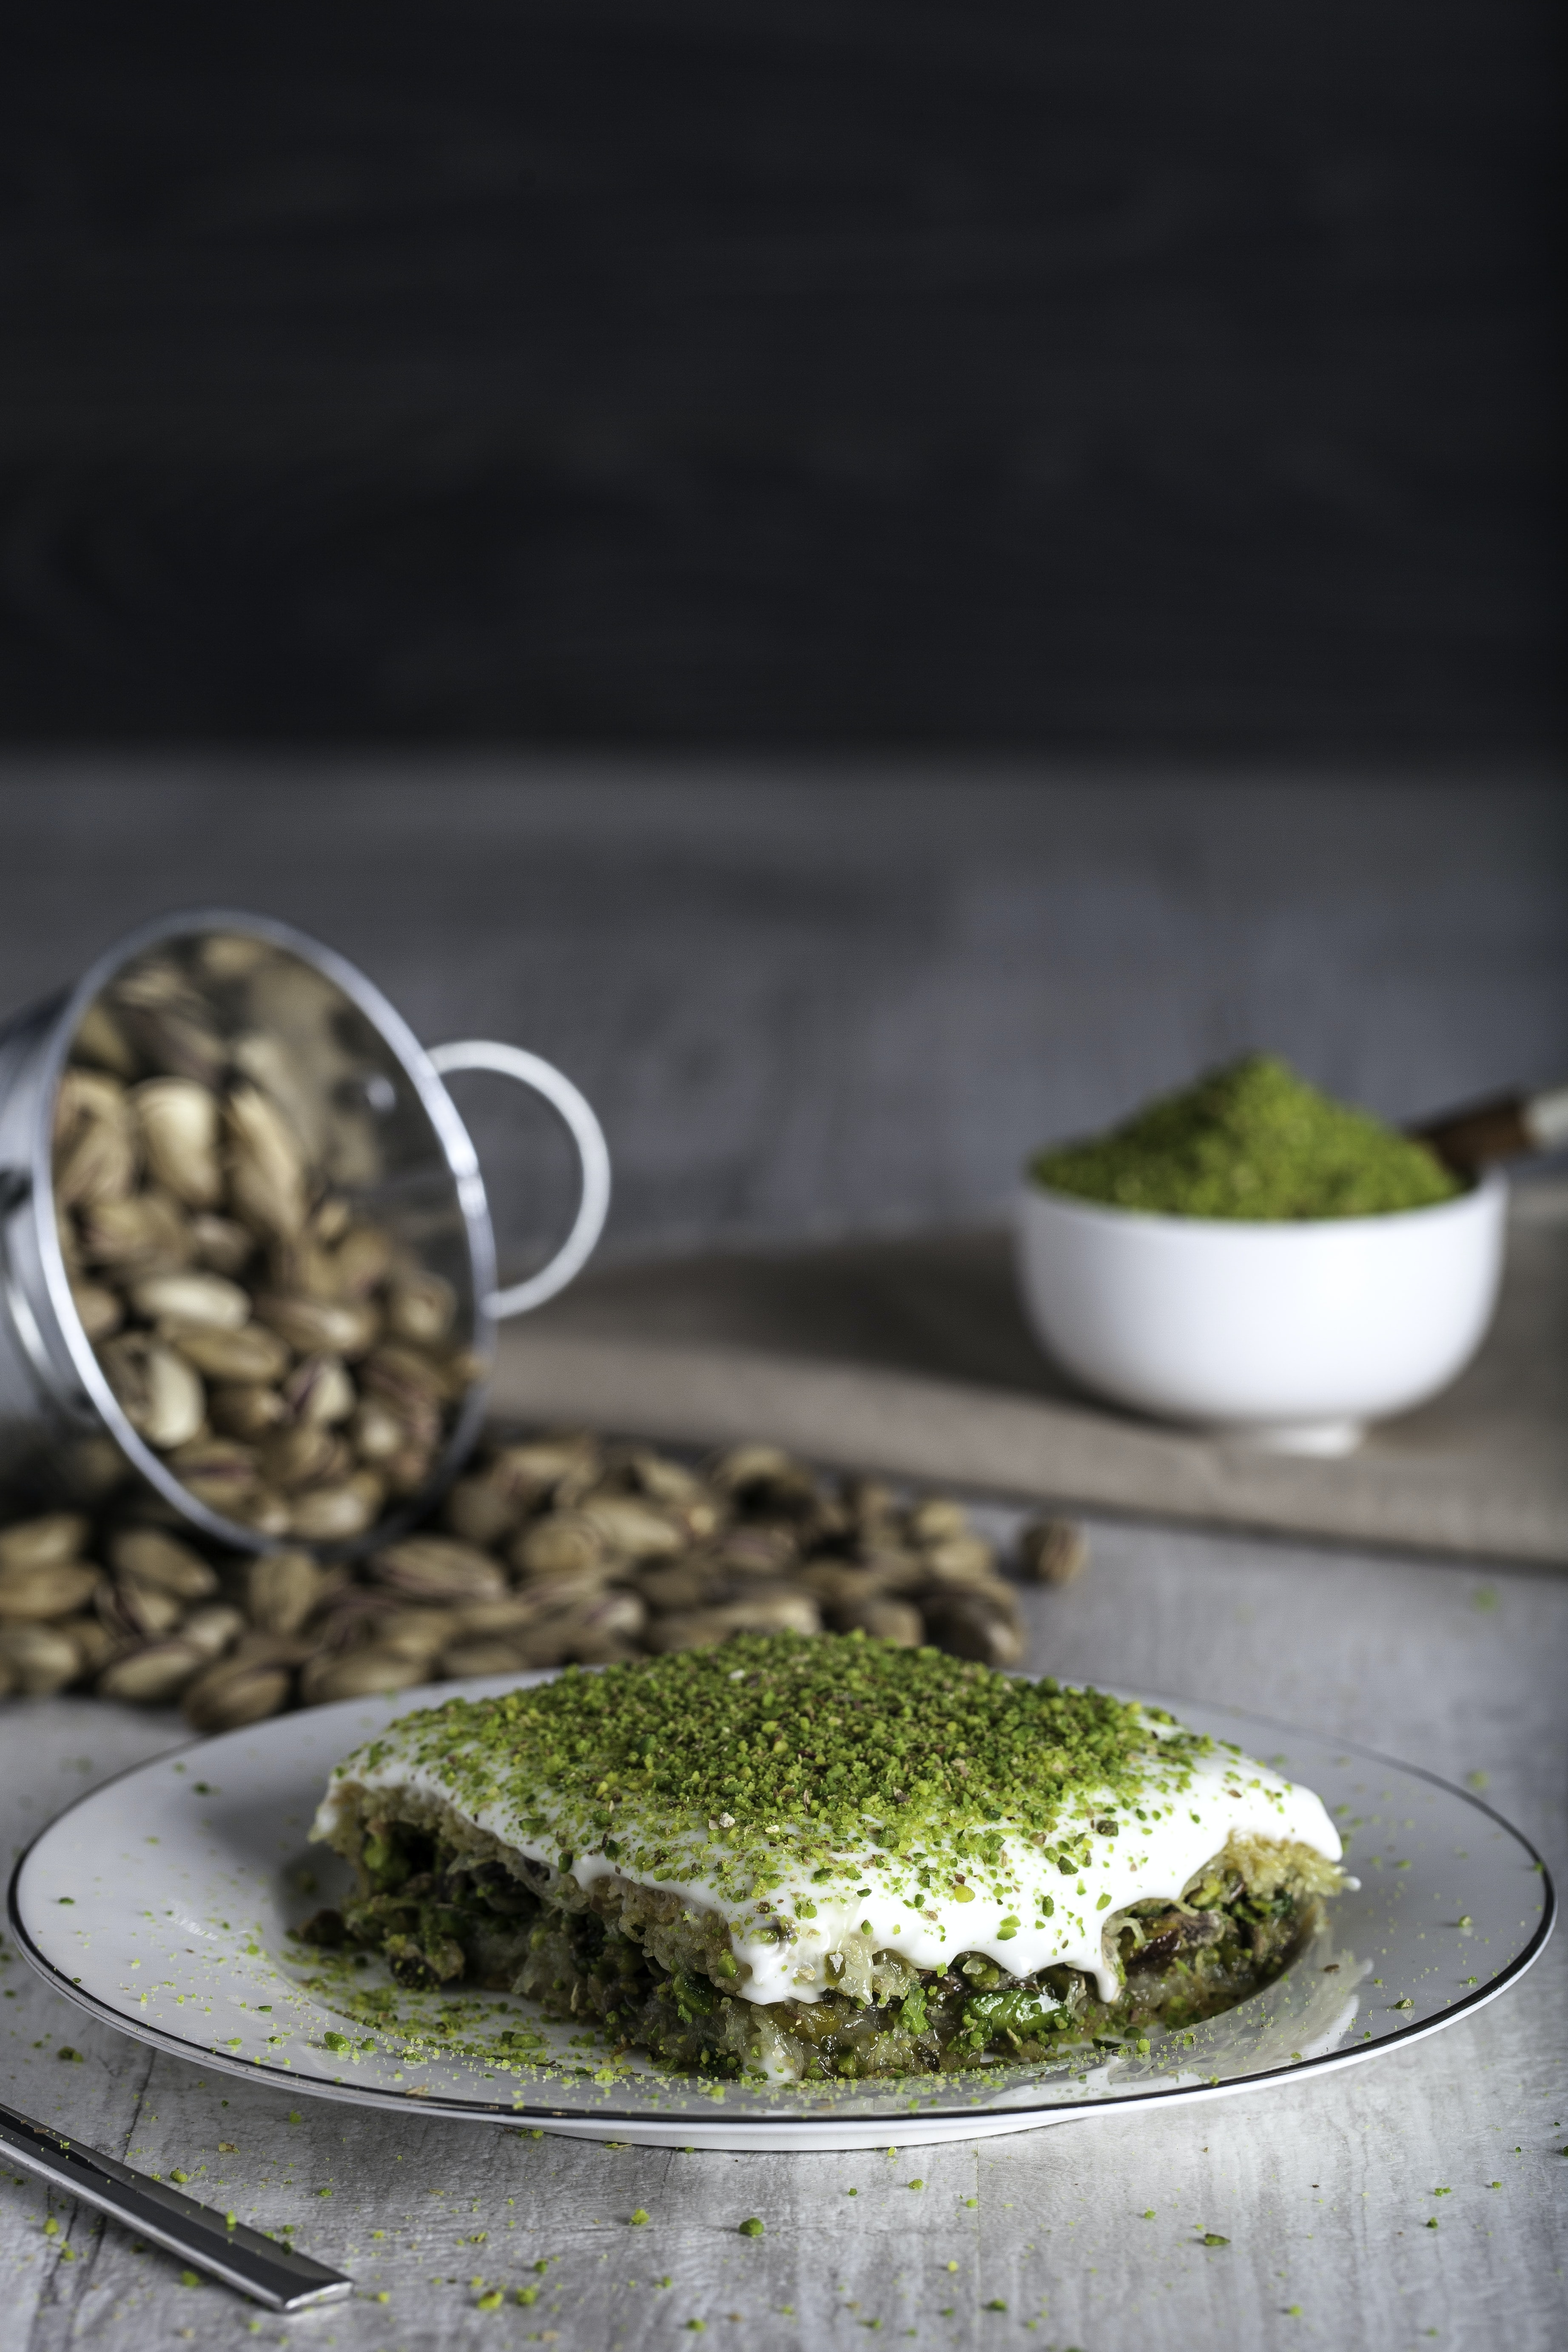 Pistachio pastry on a plate for dessert